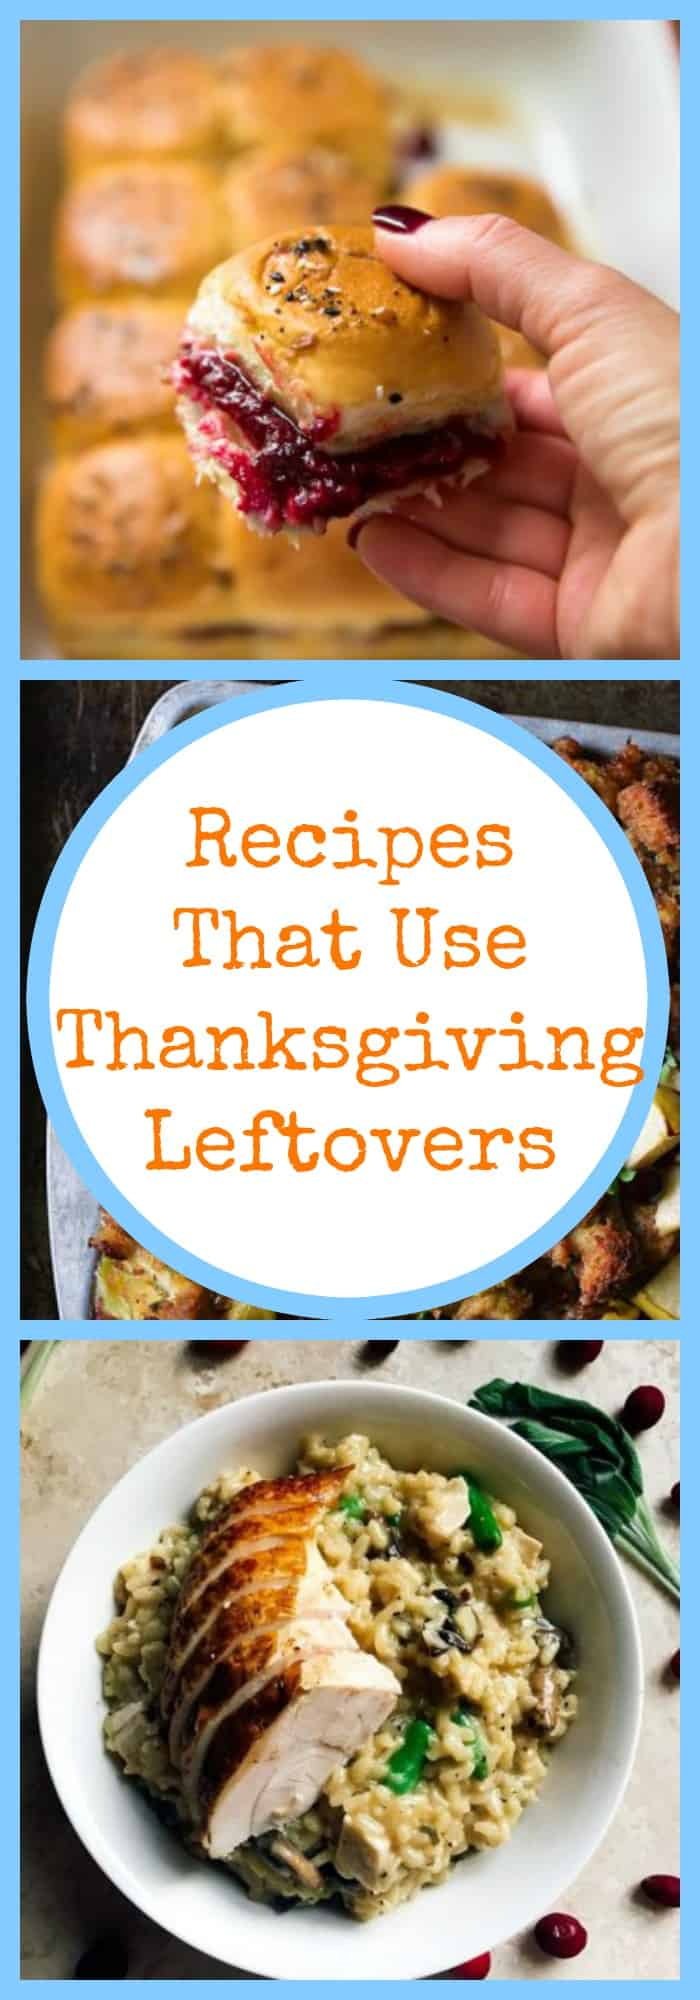 Recipes that Use Thanksgiving Leftovers